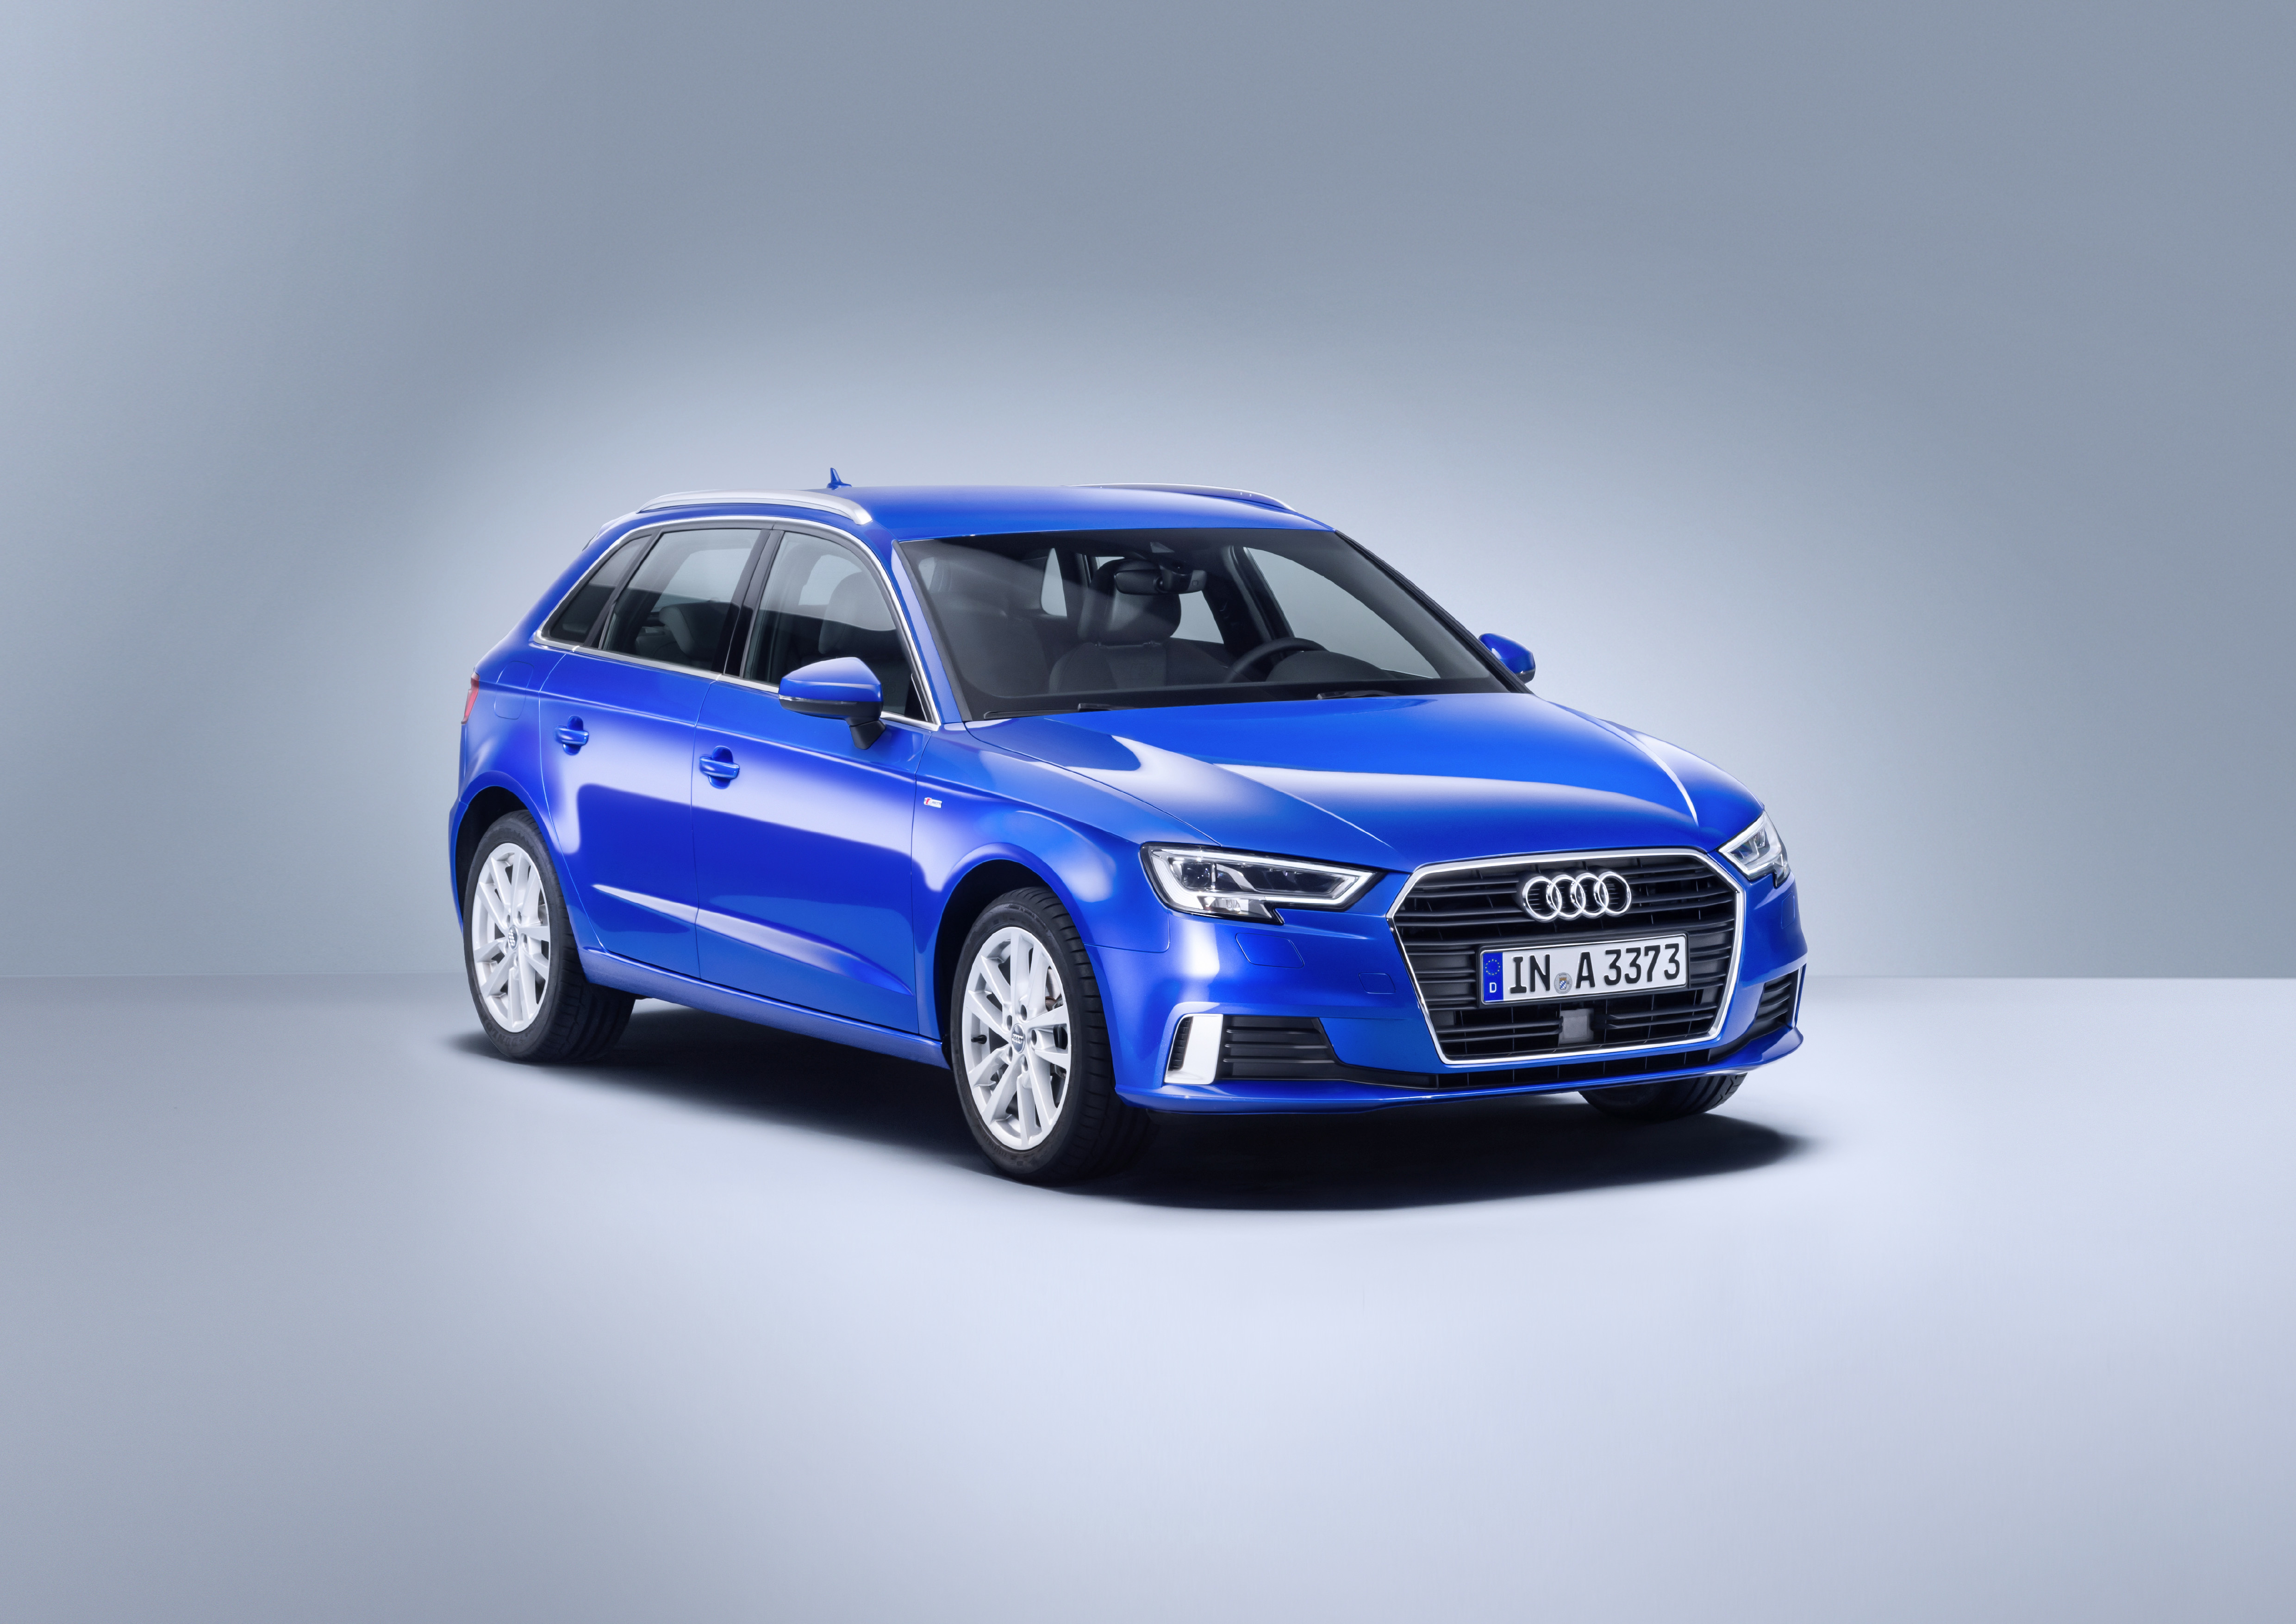 Audi A3 Sportback, Generation 3, Year of manufacture 2016